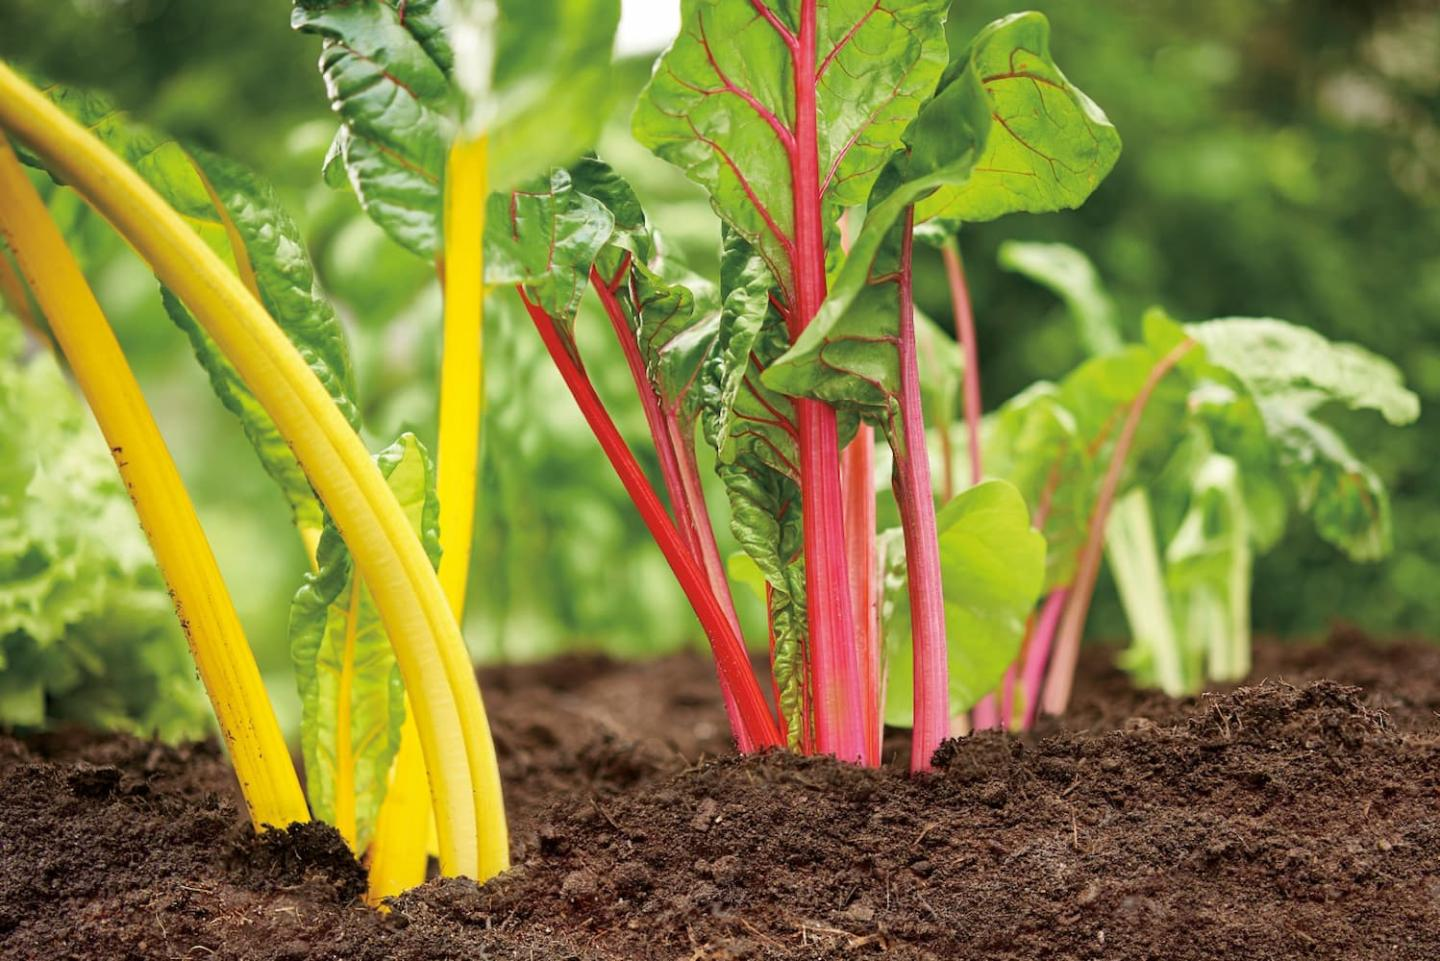 Colorful Swiss chard in brown dirt.